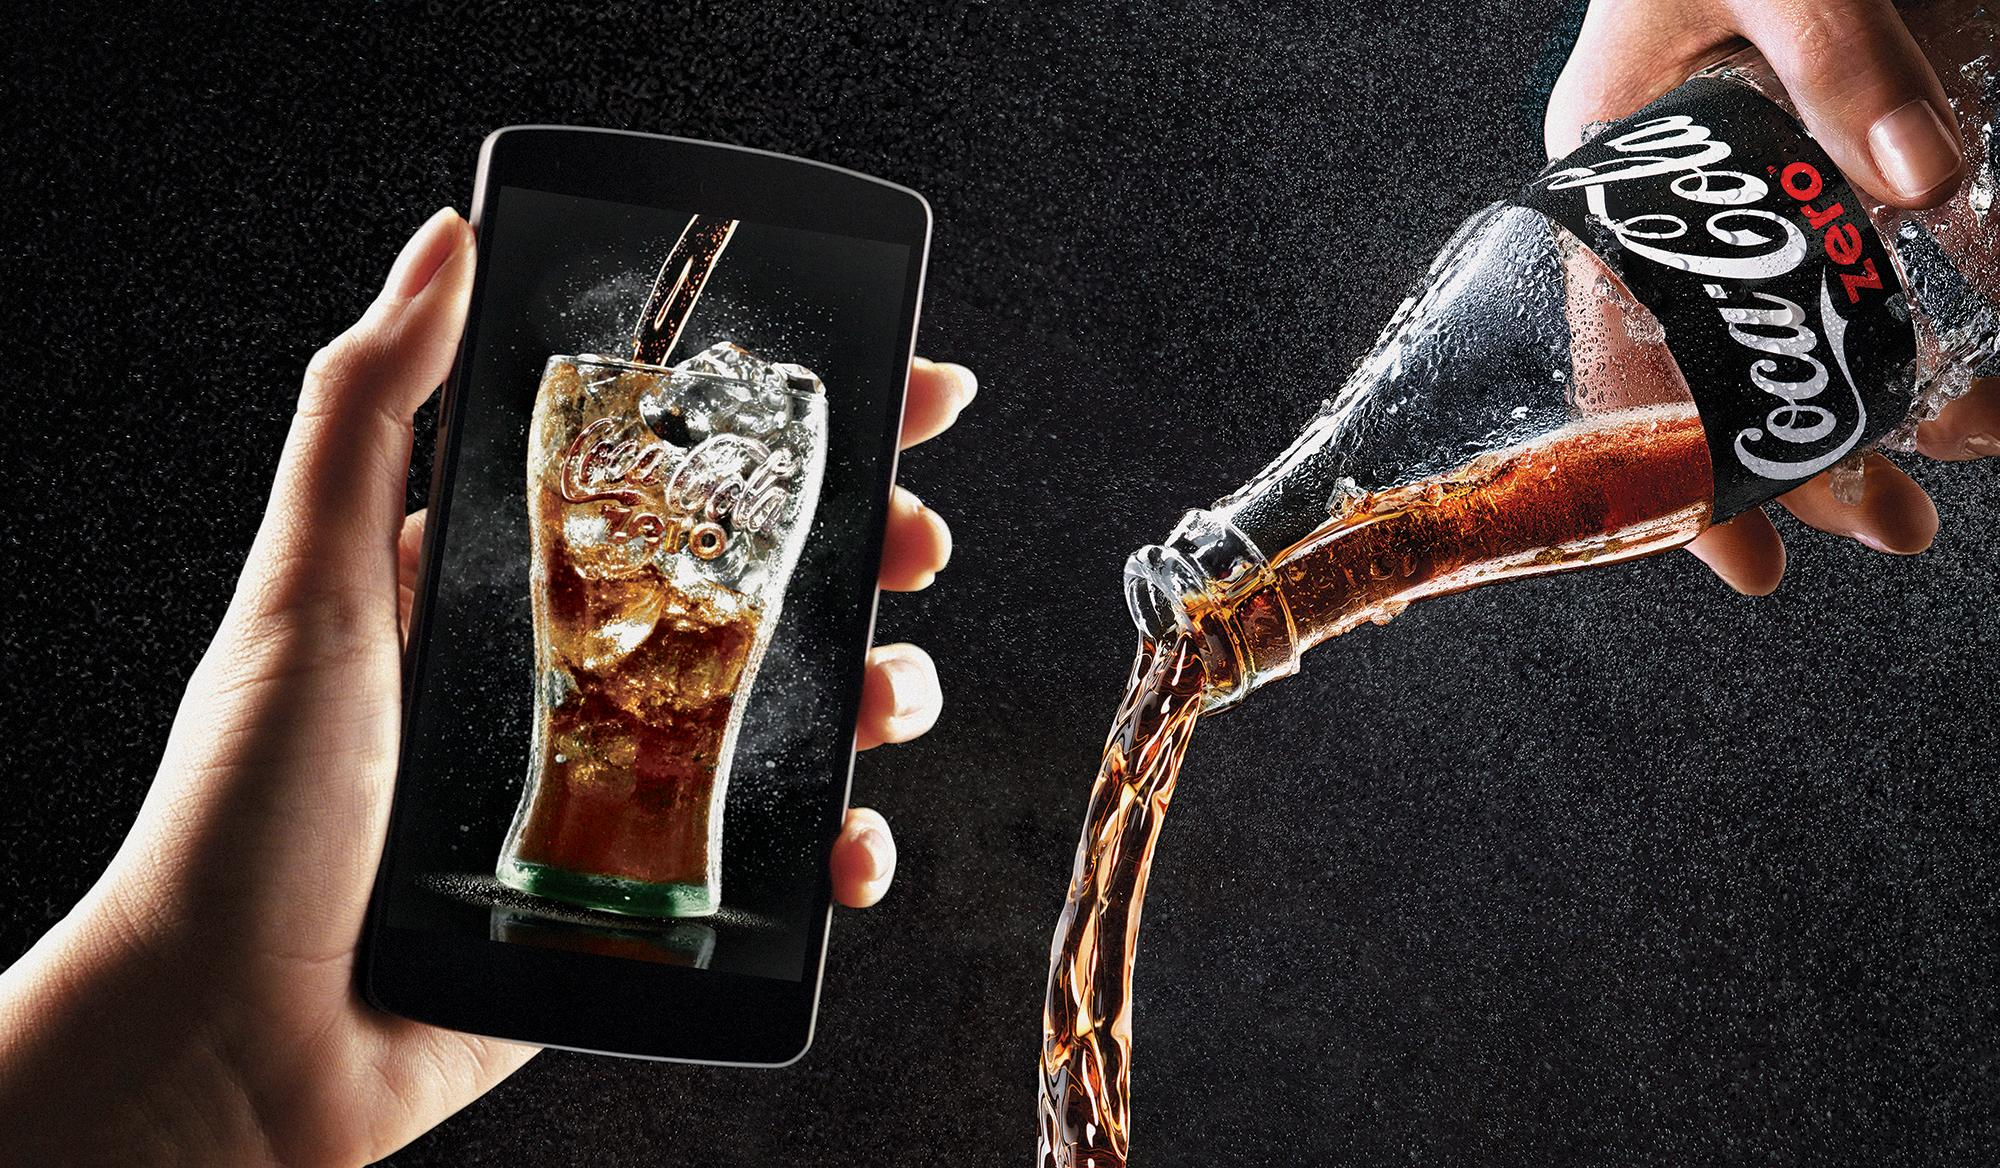 COCA COLA FIRST EVER DRINKABLE AD CAMPAIGN